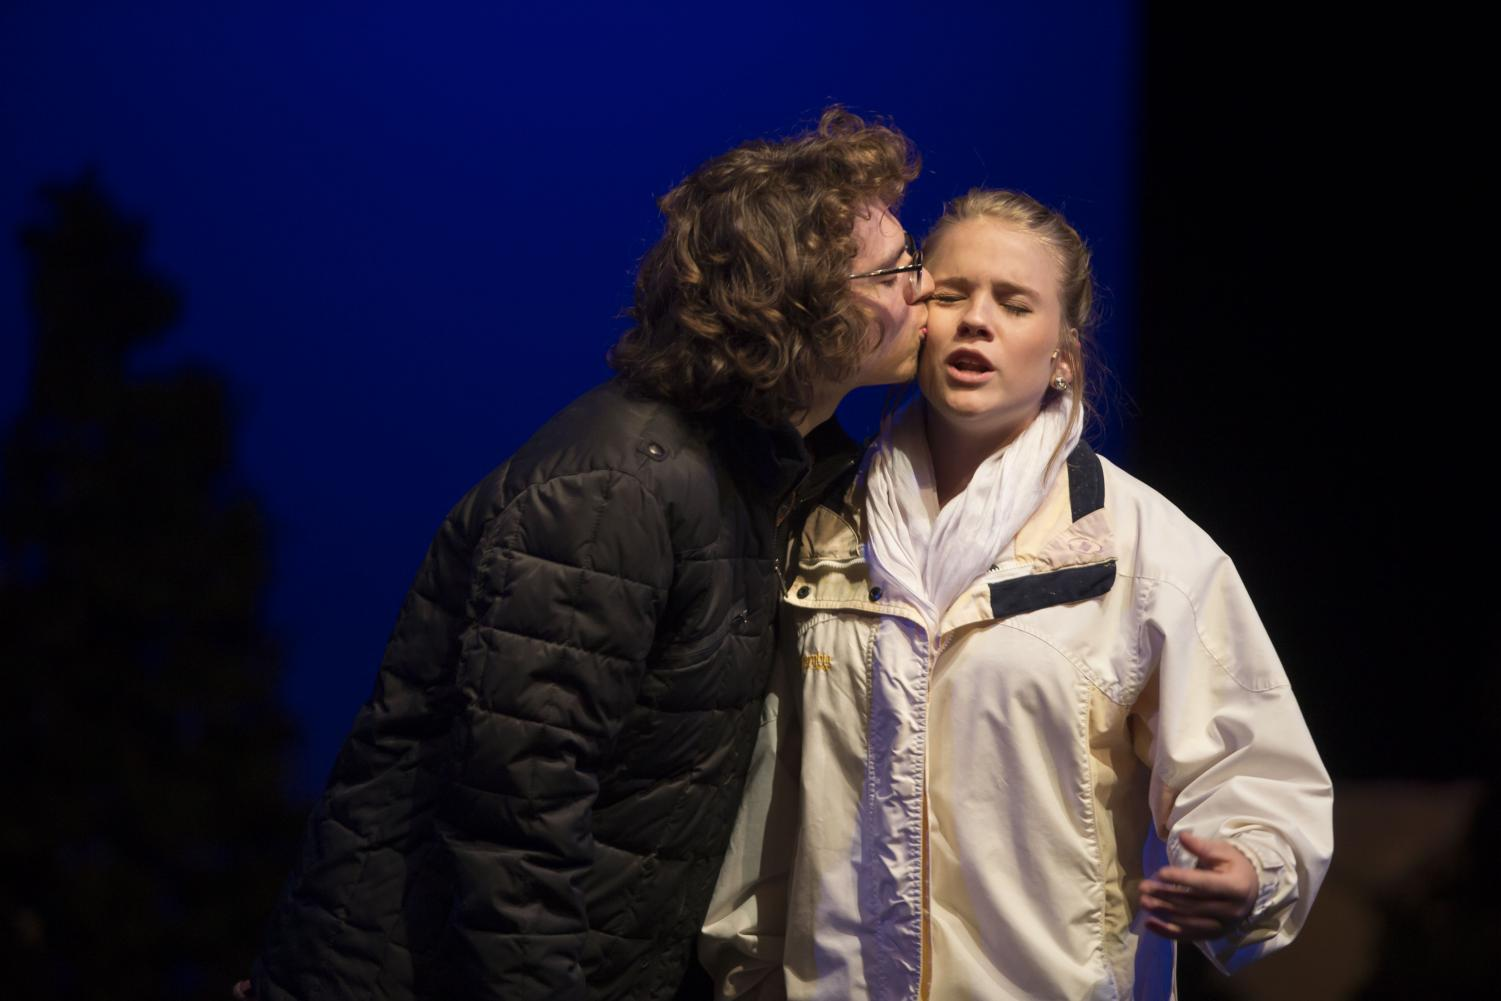 Elijah Pacheco kisses Moriah Andrews on the cheek during a matinee performance of Almost Maine in the KW auditorium on Saturday October 21st.